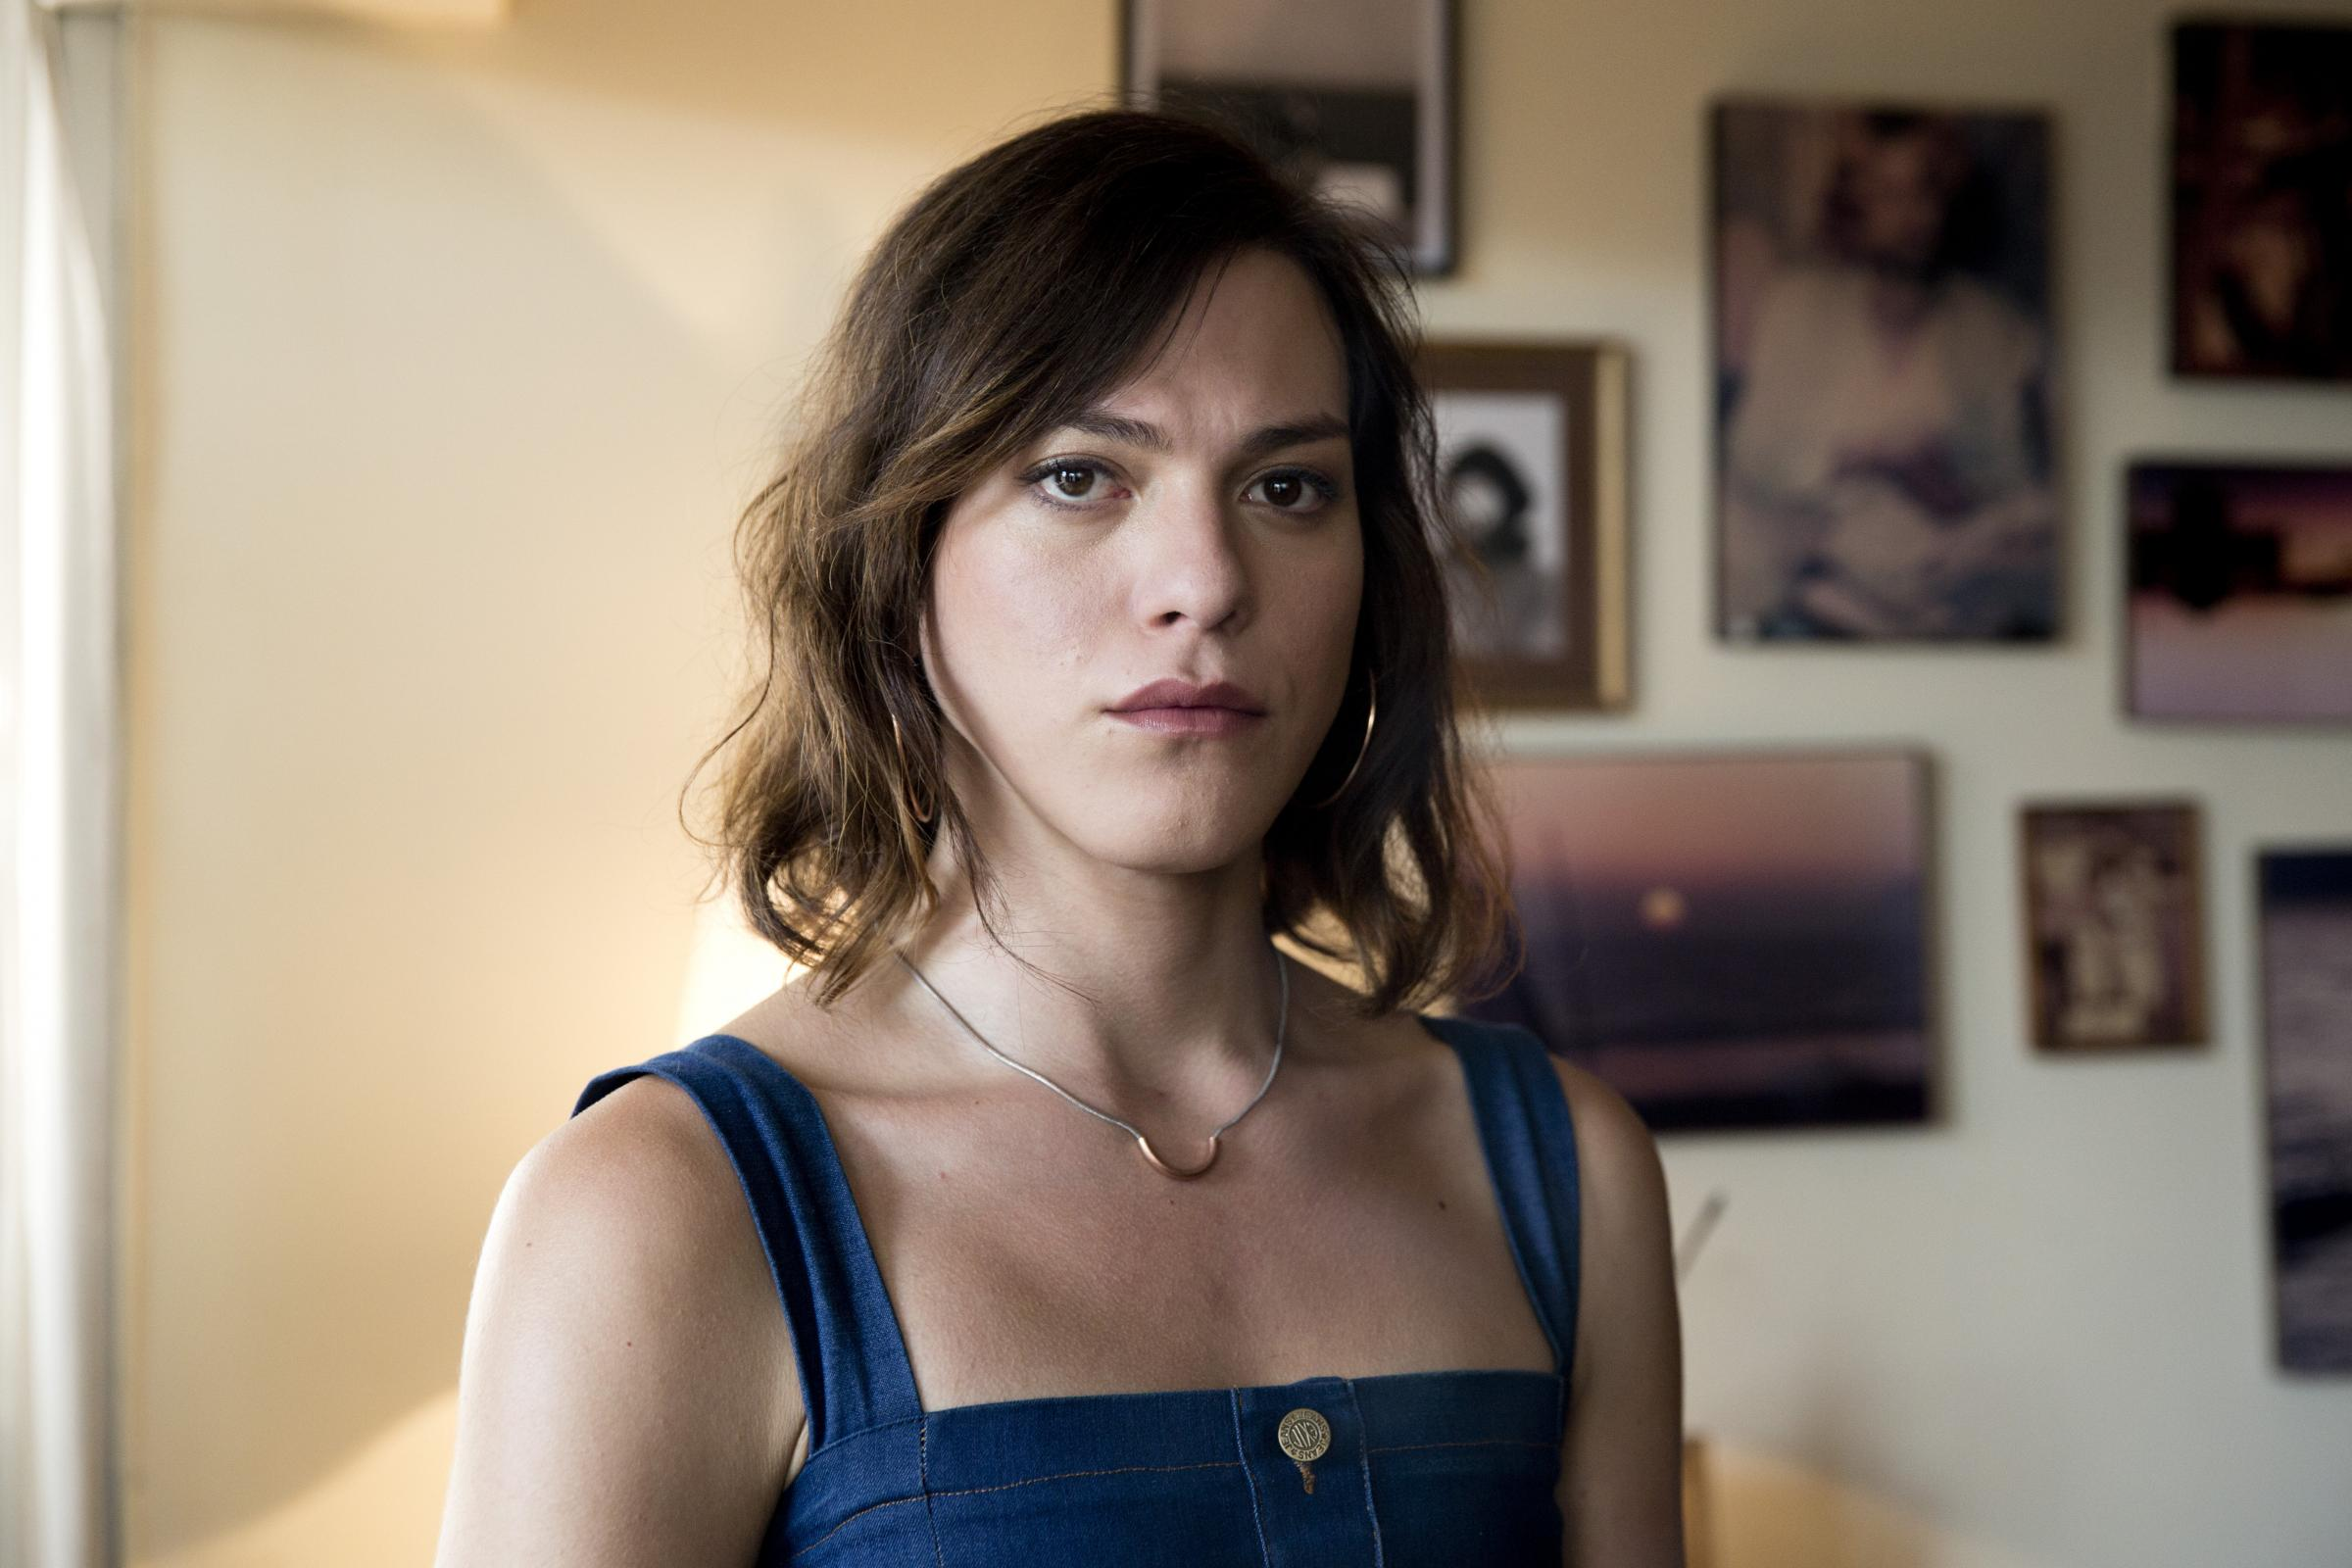 Daniela Vega plays young singer Marina Vidal in the Oscar-winning A Fantastic Woman